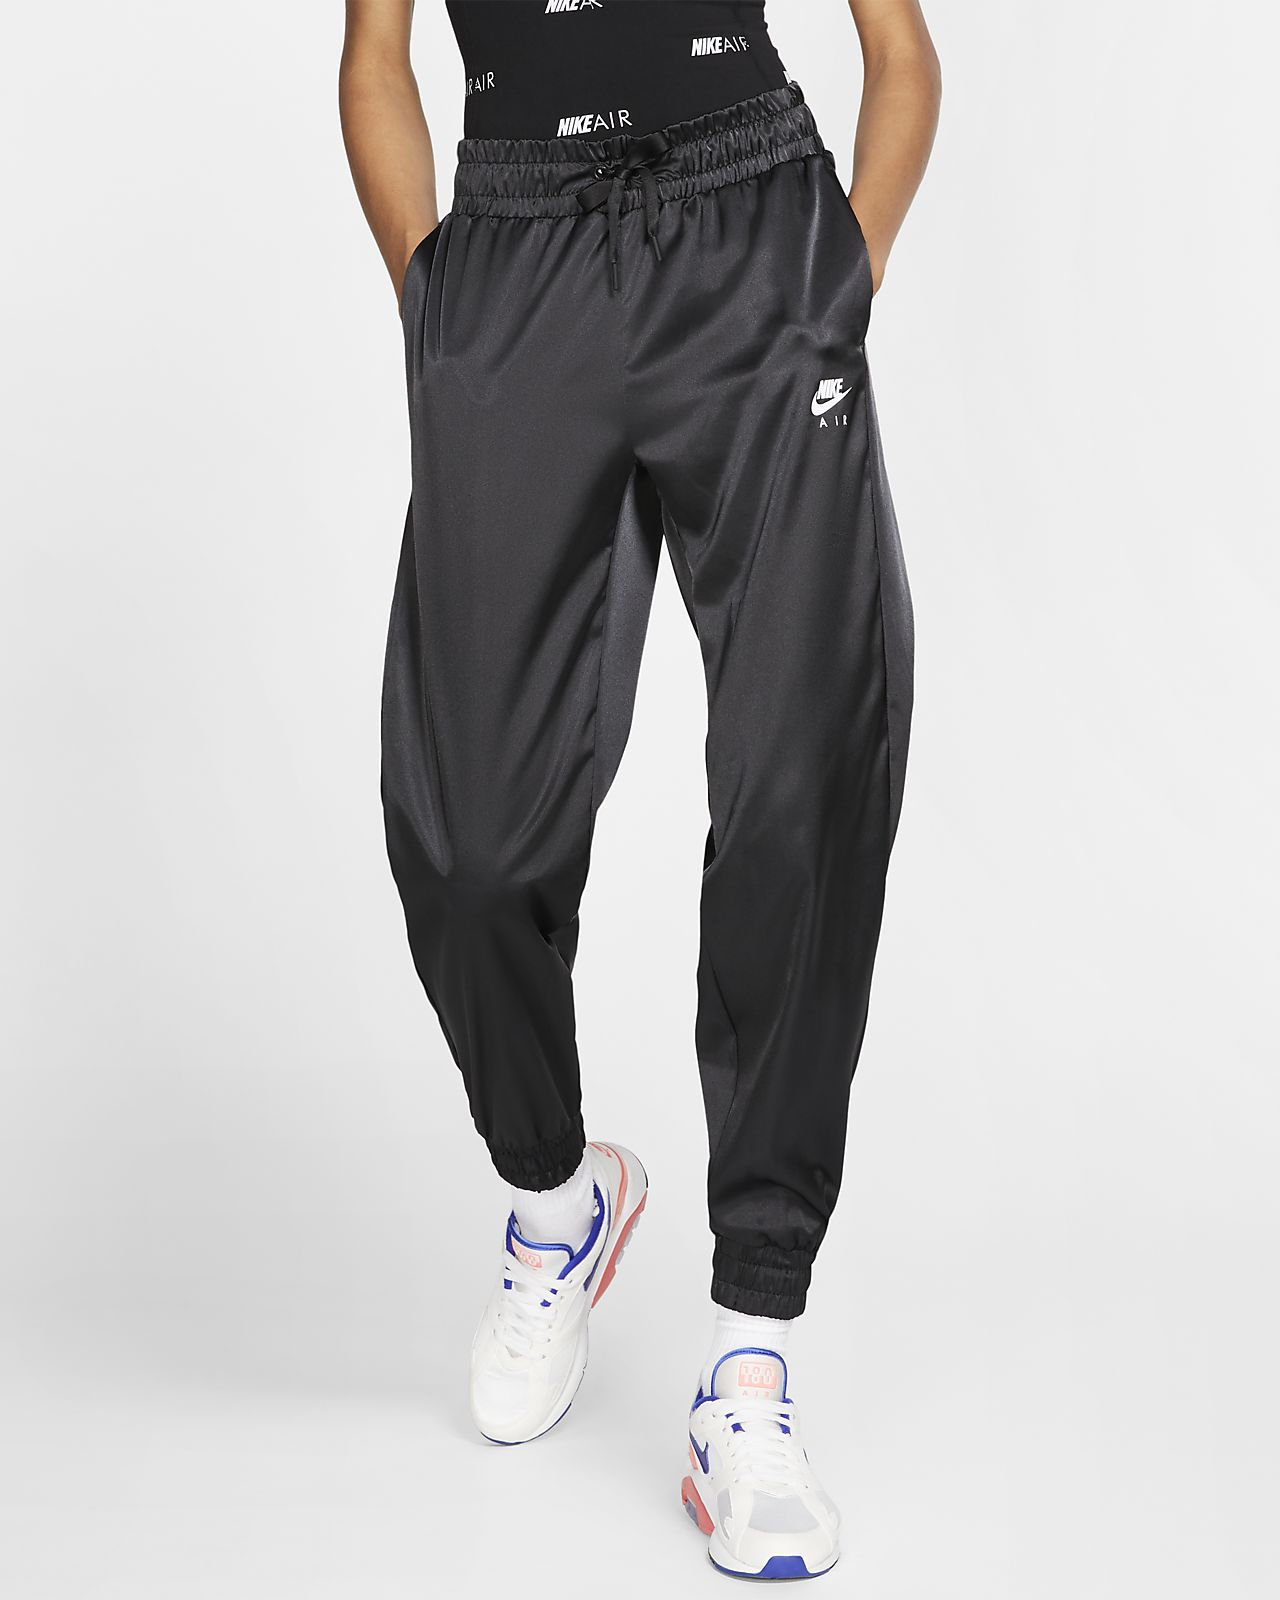 dependable performance wide selection of colours and designs outlet for sale Nike Air Women's Satin Tracksuit Bottoms